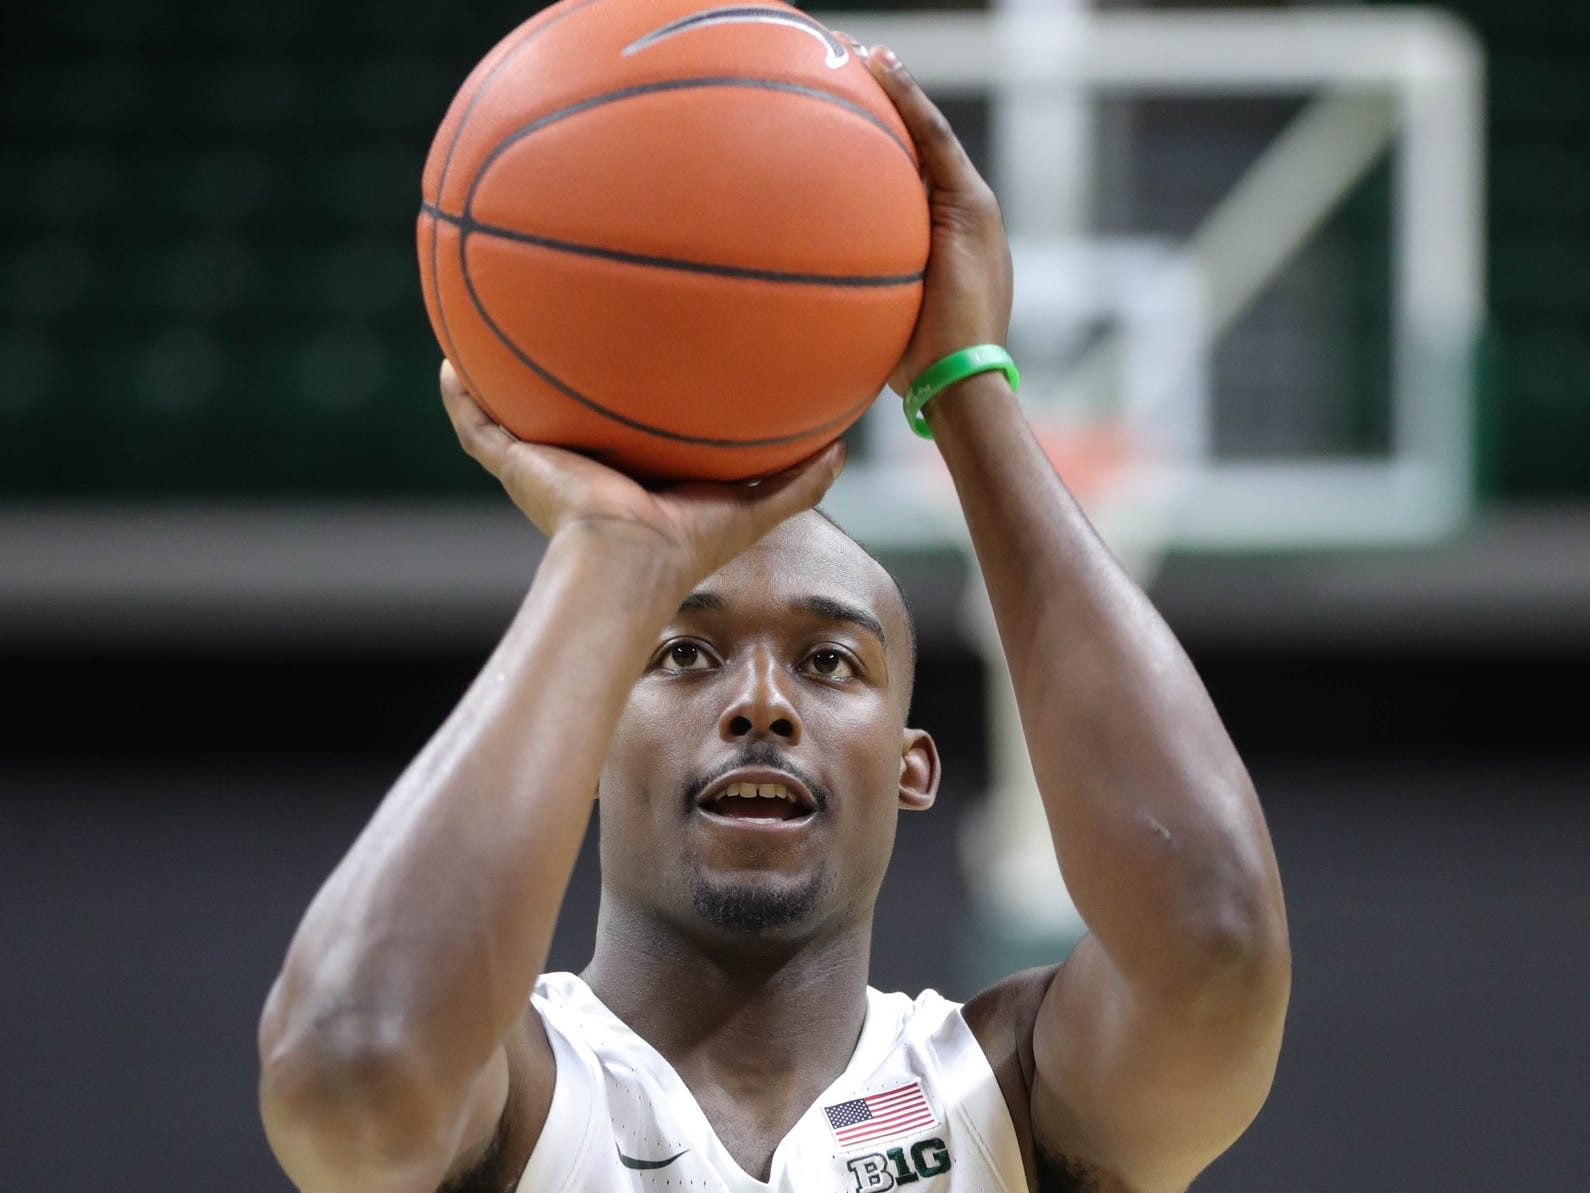 Michigan State guard Joshua Langford shoots free throws at media day Thursday, Oct. 25, 2018 at Breslin Center in East Lansing.